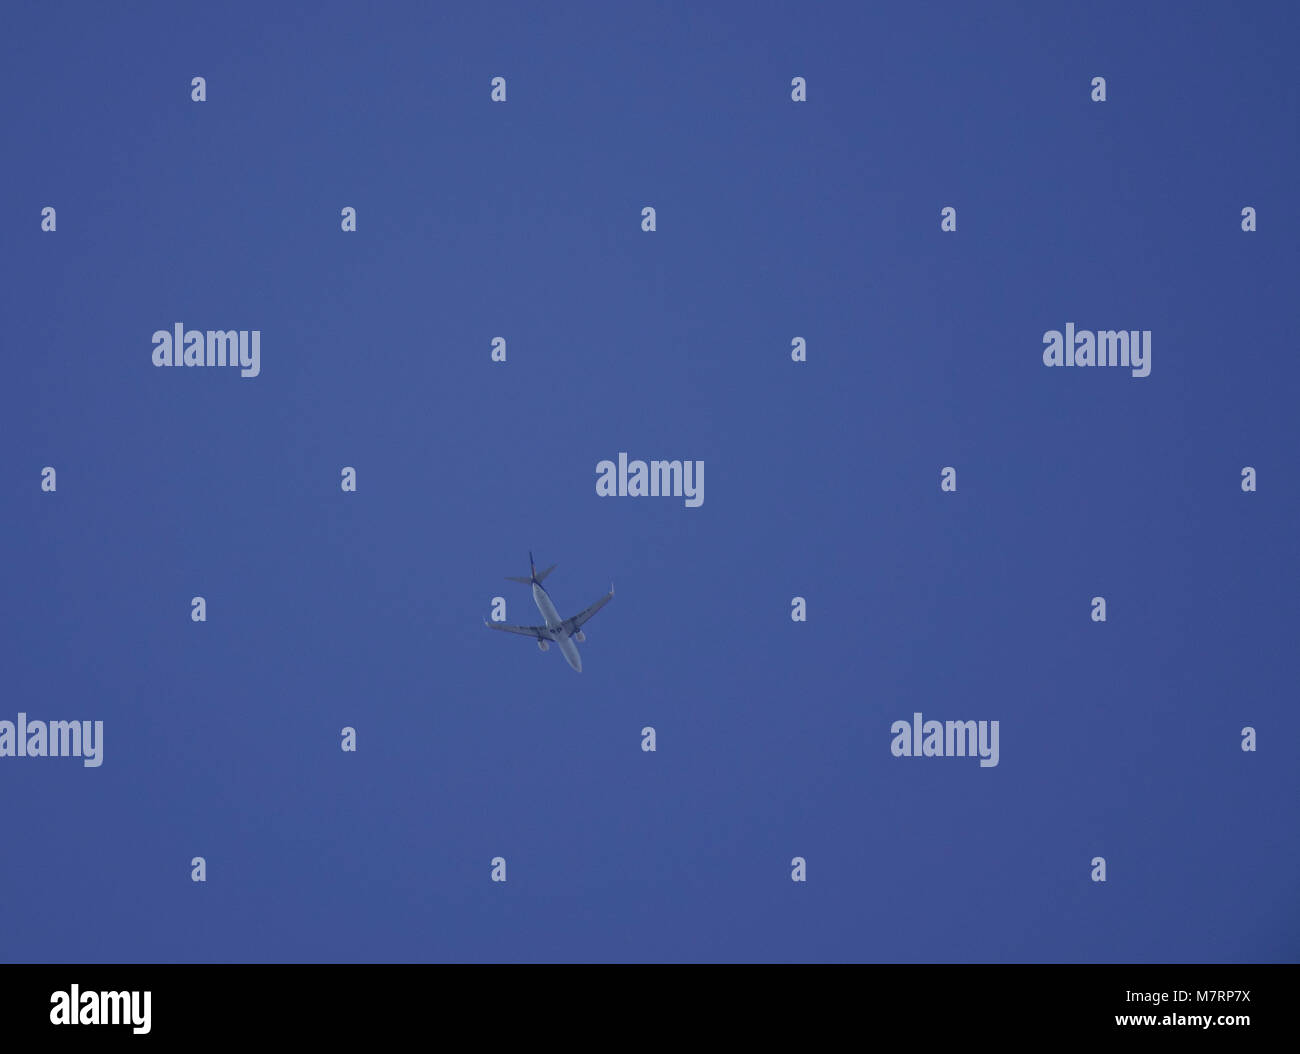 A civil aircraft flying in the blue sky at sunny day. - Stock Image